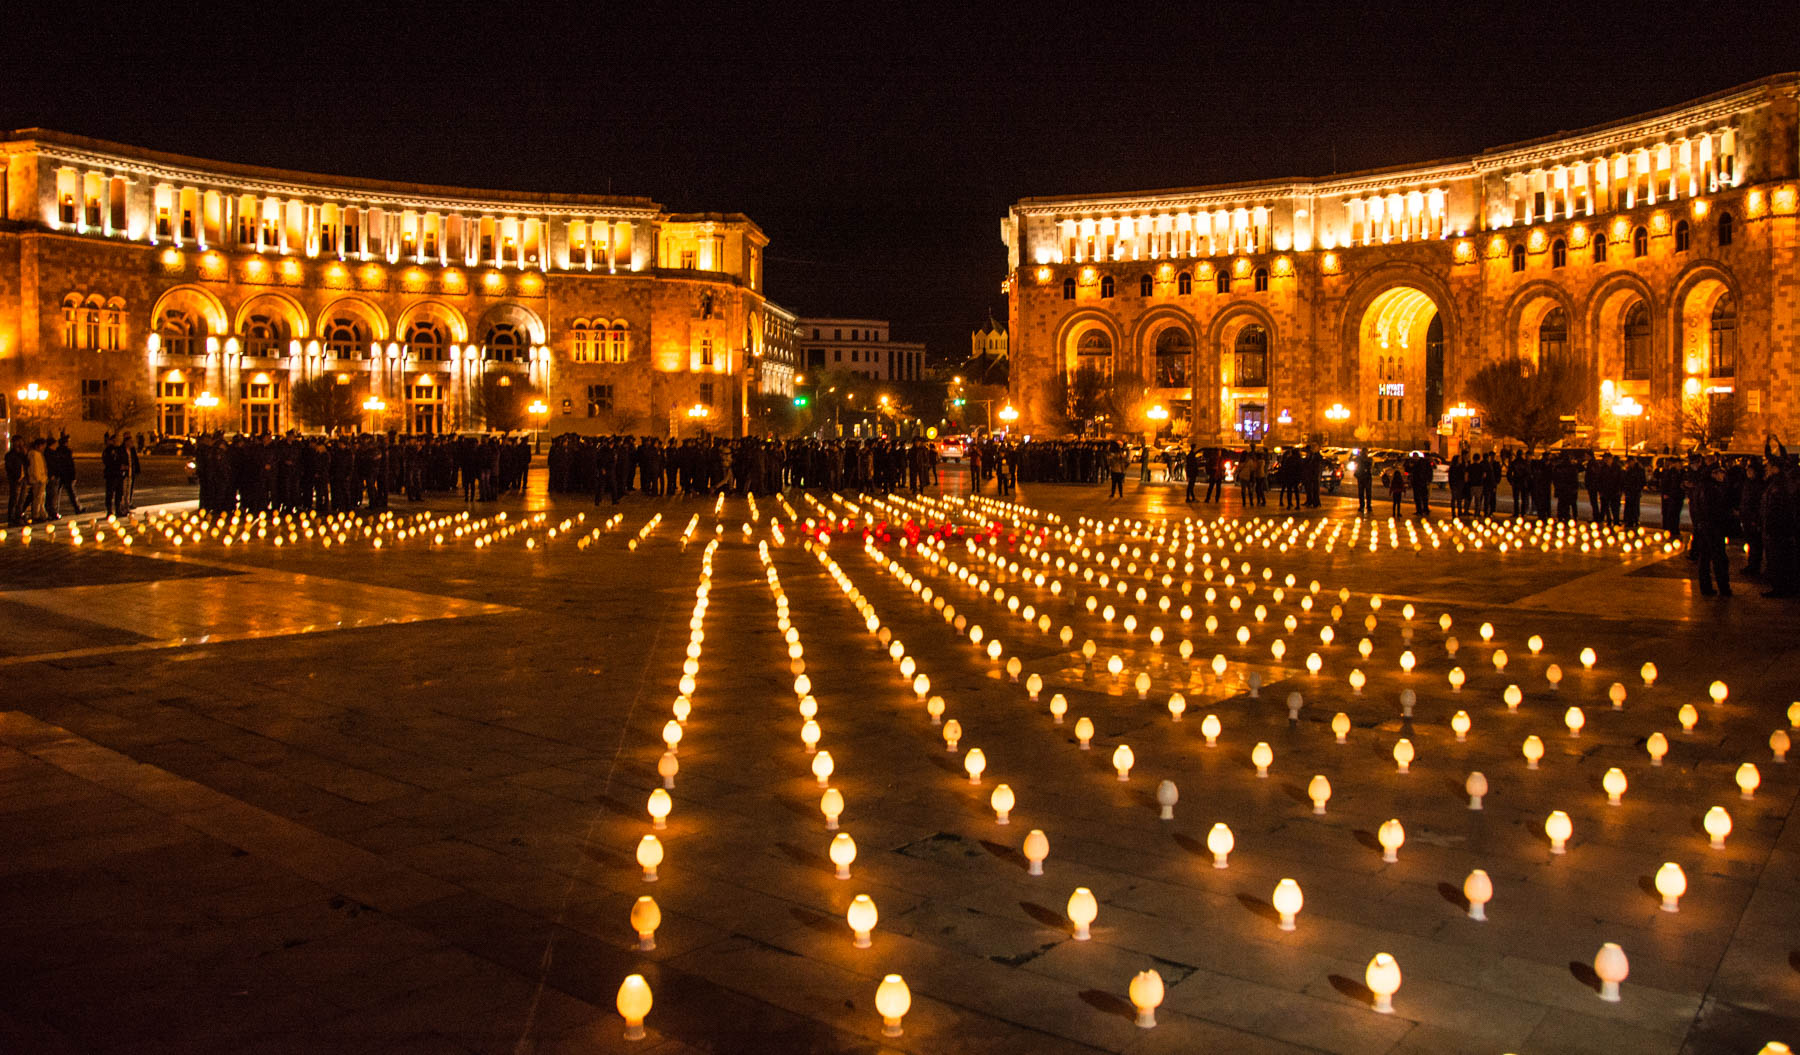 Easter in Armenia - A giant cross made of candles in Republic Square, Yerevan to celebrate Easter in Armenia.